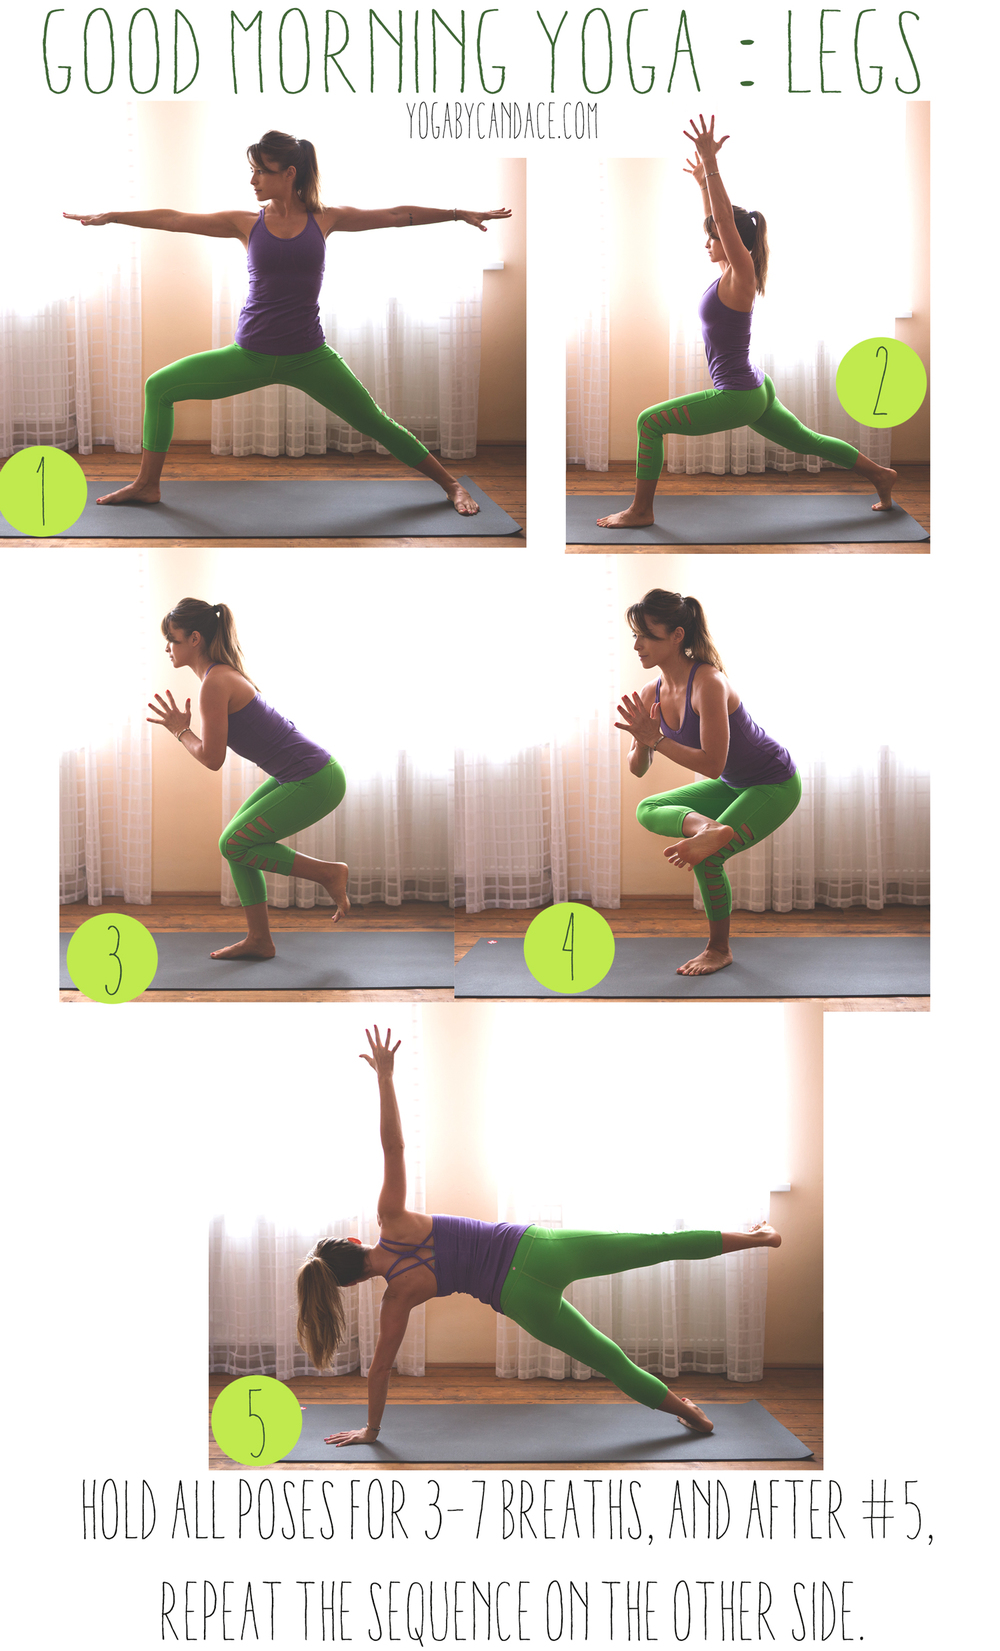 Pin it now, practice later! Wearing: Kira Grace pants, Athleta top. Using: black mat pro.